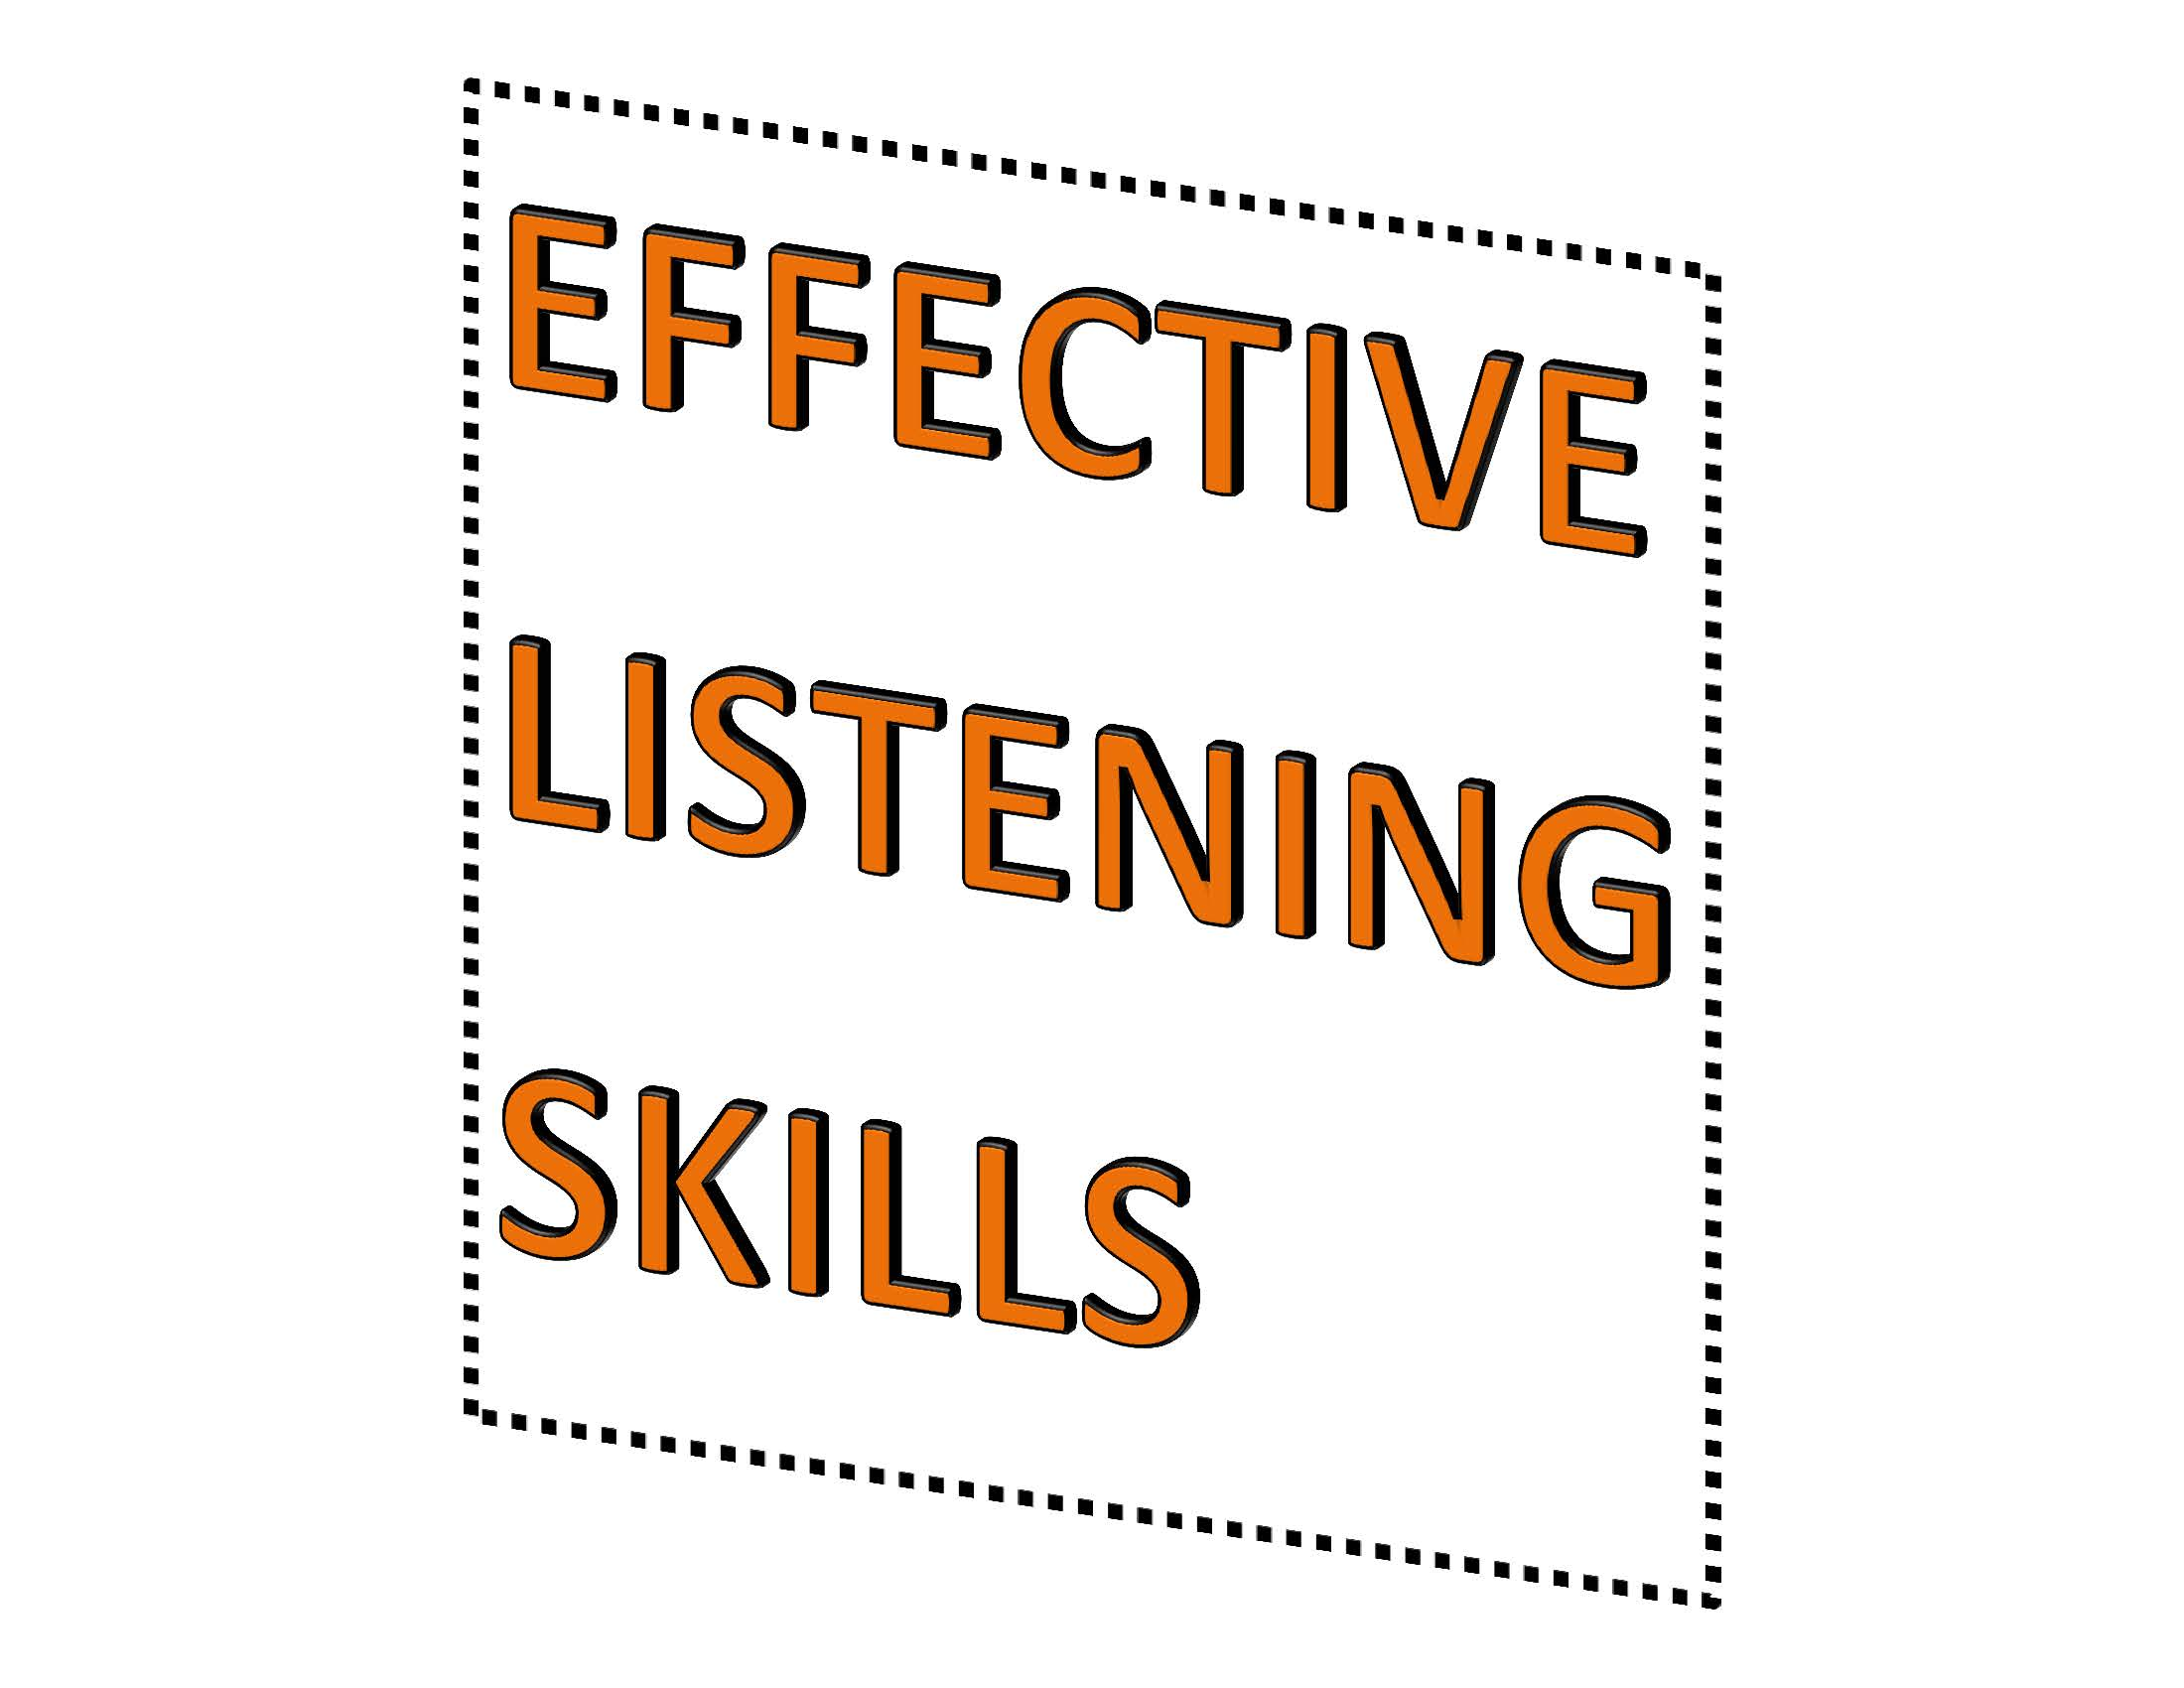 Developing Effective Listening Skills